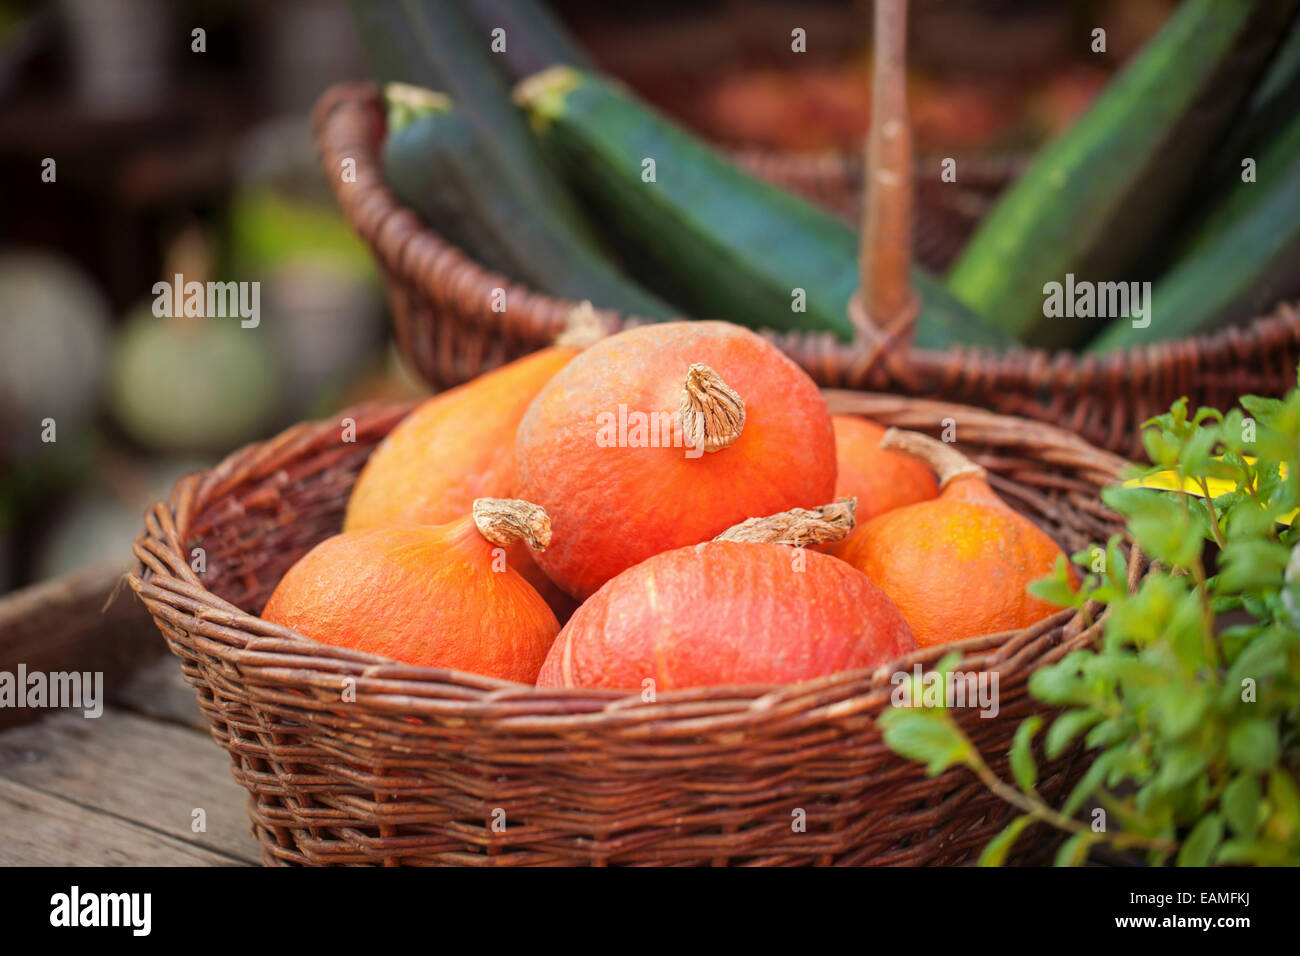 Vegetables in a baskets on farmer's market - Stock Image